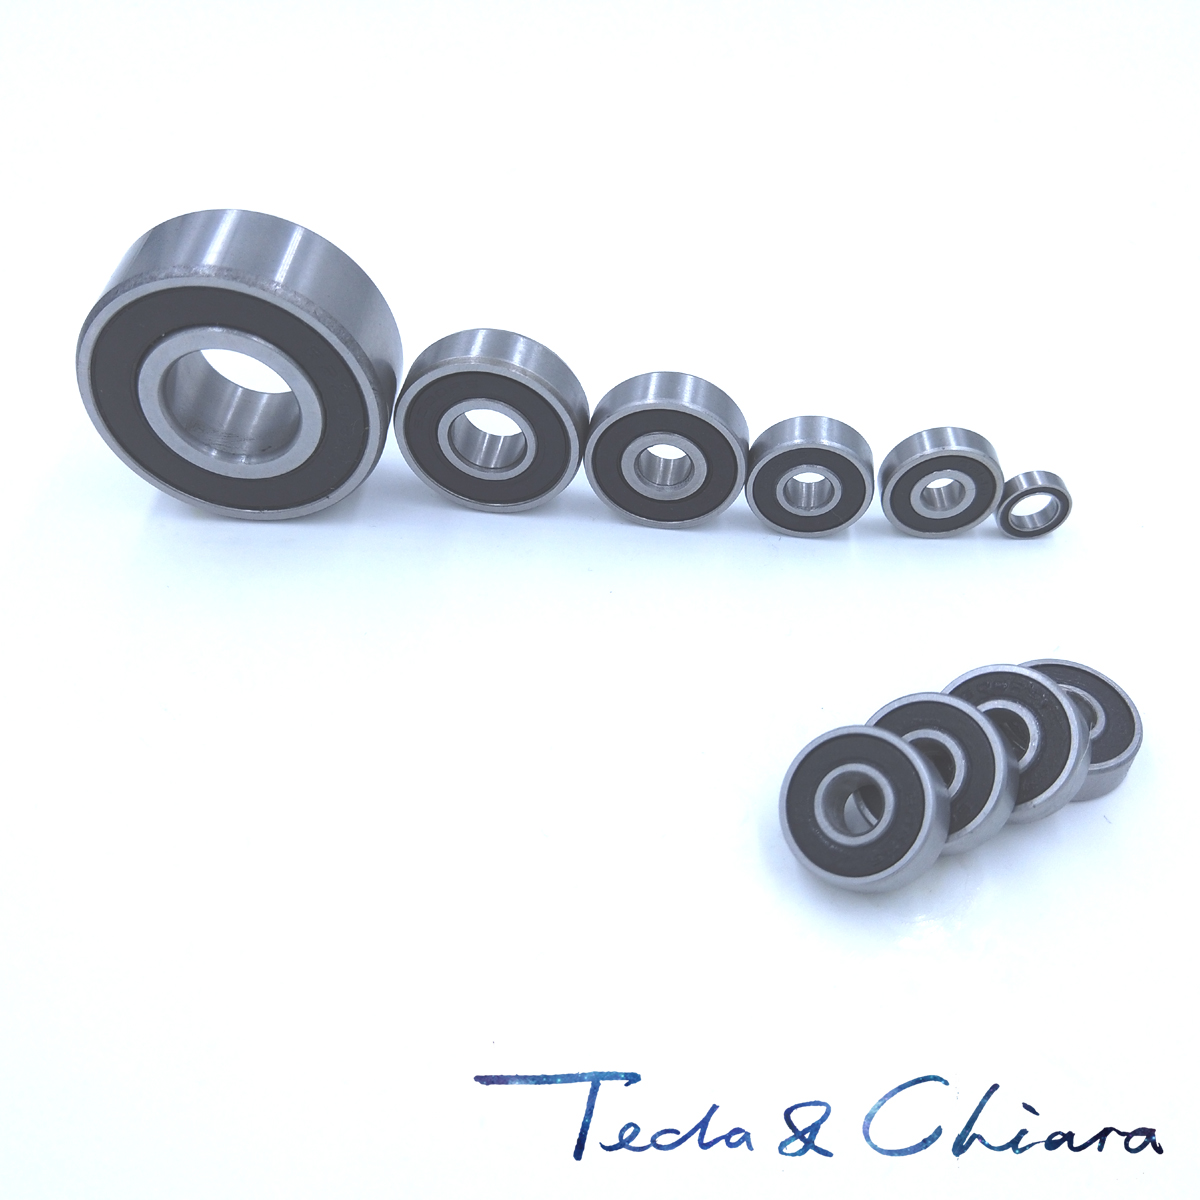 10Pcs <font><b>6902</b></font>-2RS 6902RS 6902rs <font><b>6902</b></font> <font><b>rs</b></font> Deep Groove Ball Bearings 15 x 28 x 7mm Free shipping High Quality image